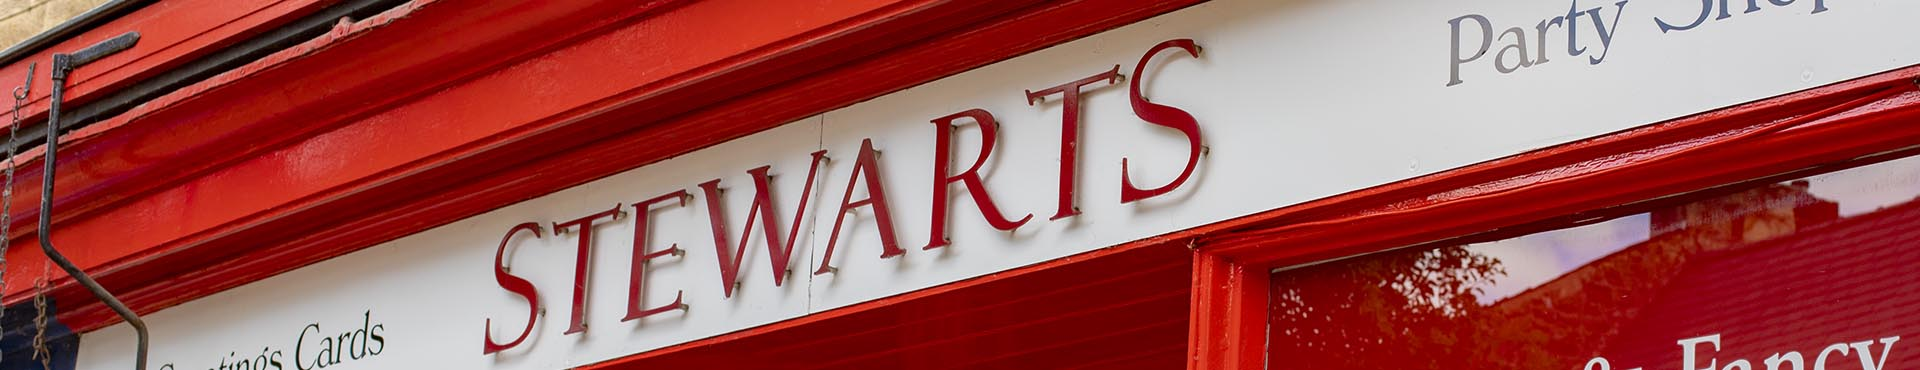 Stewarts of Bakewell Party Shop